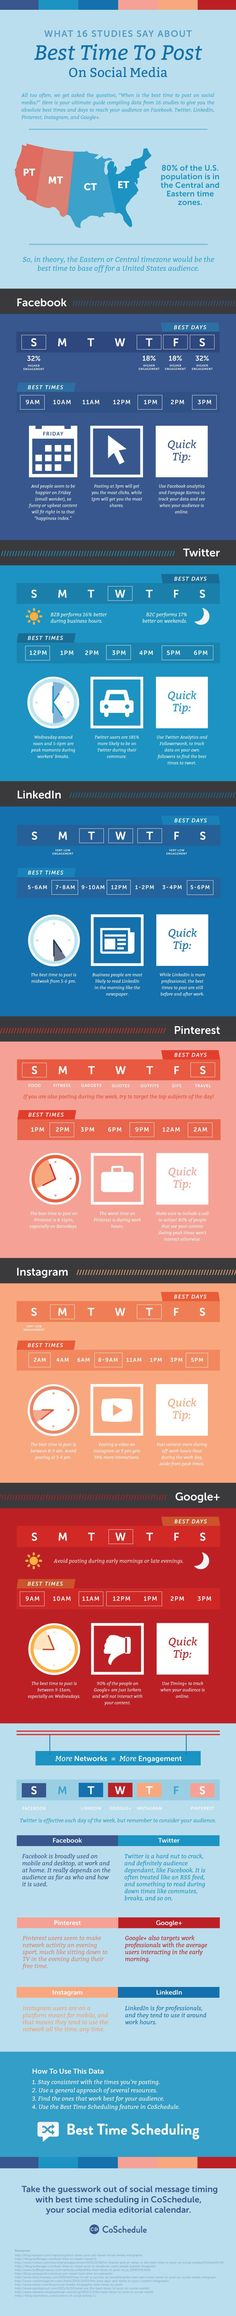 Here Are The Best Times To Post On Each Social Media Network